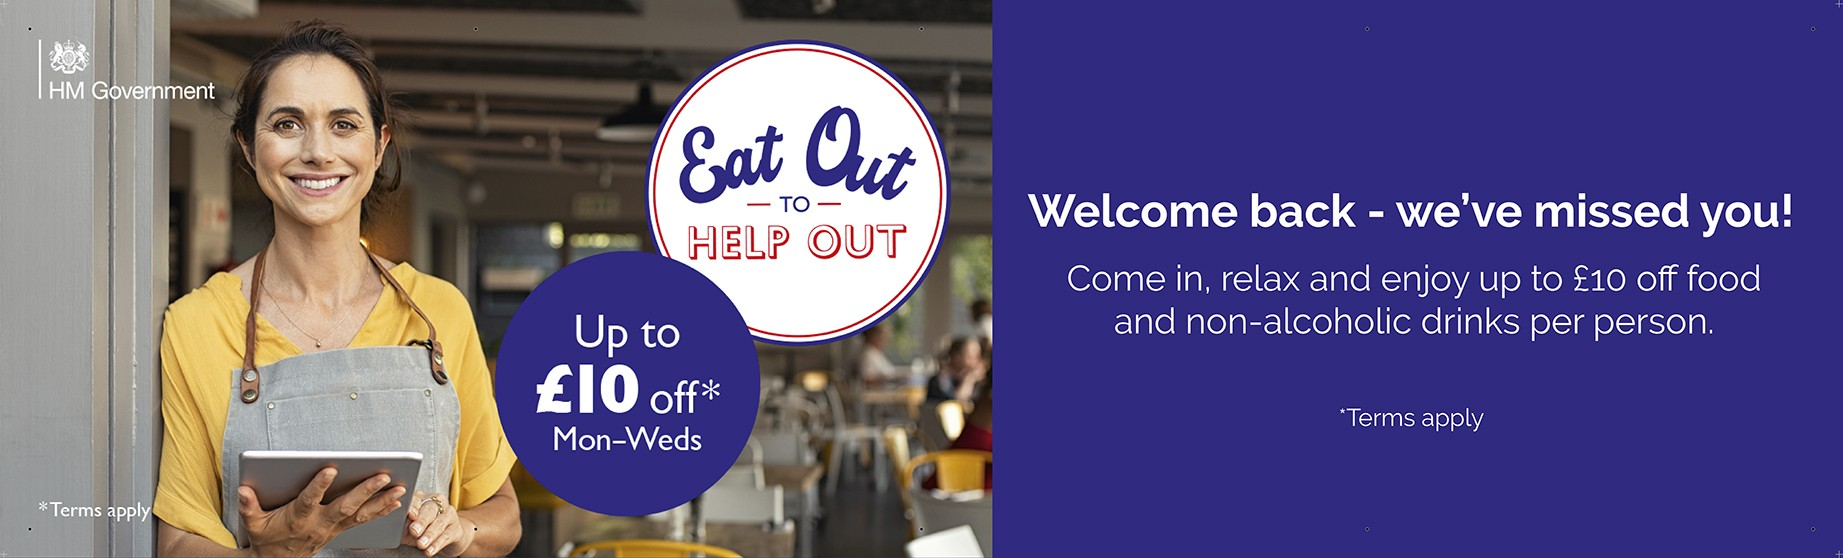 Eat Out to Help Out Banner v1